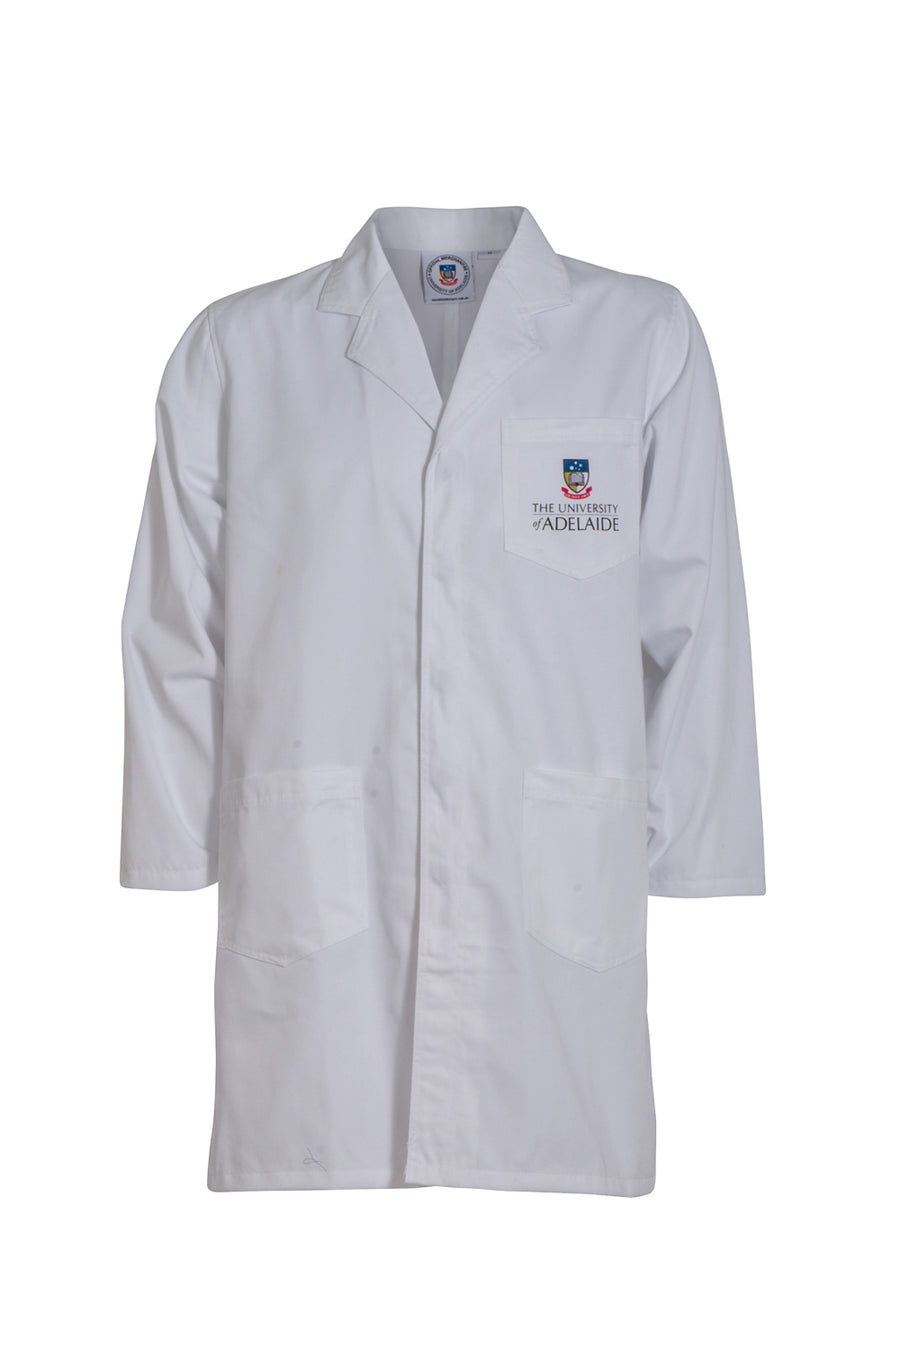 UofA Labcoat  embroidered